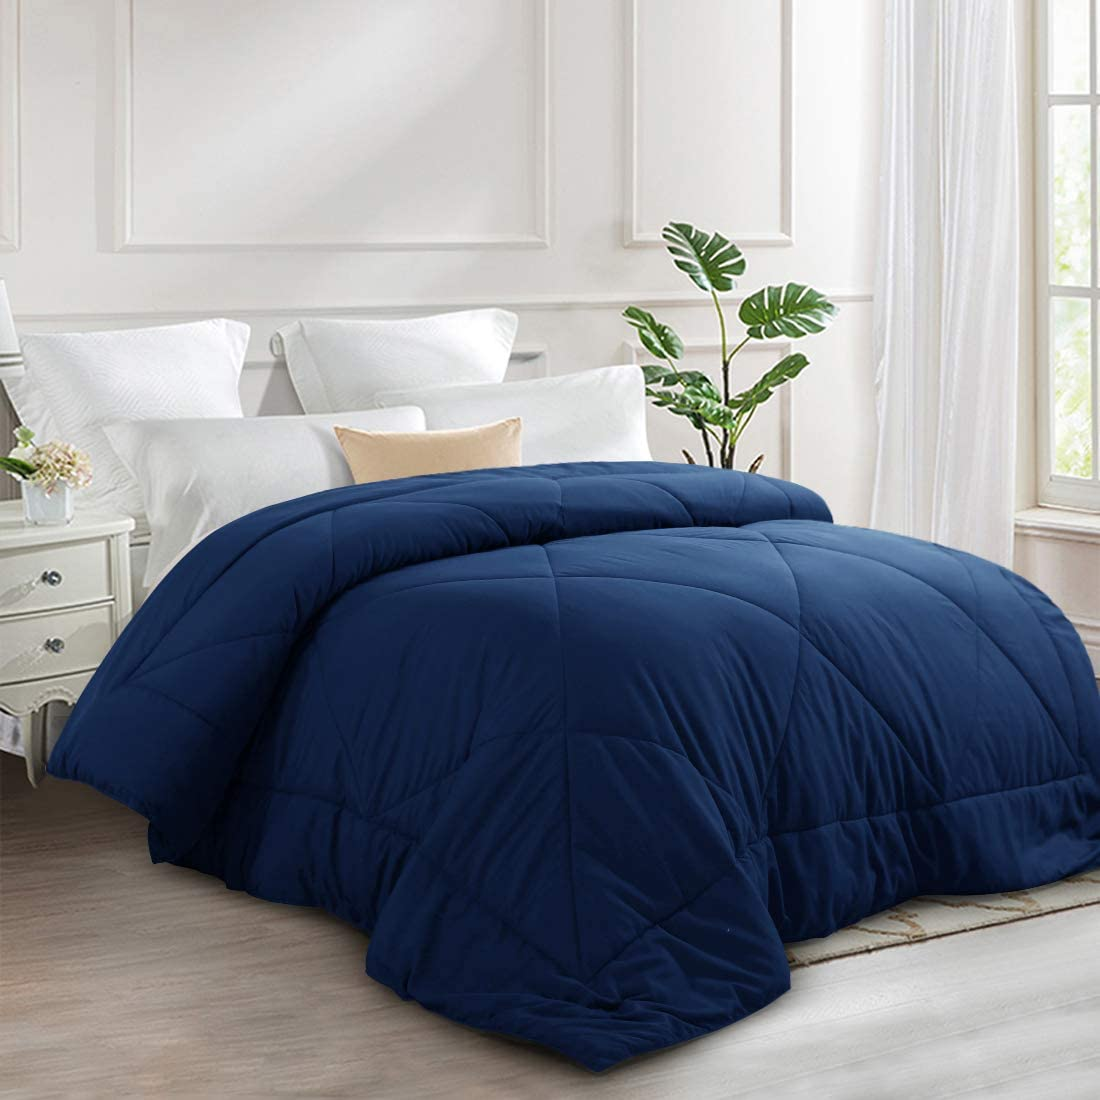 INGALIK All-Season Bed Comforter Best Soft Down Alternative Quilted Comforter with Corner Ties - Summer Cooling - Machine Washable (Navy Blue, Queen(88×88inch))